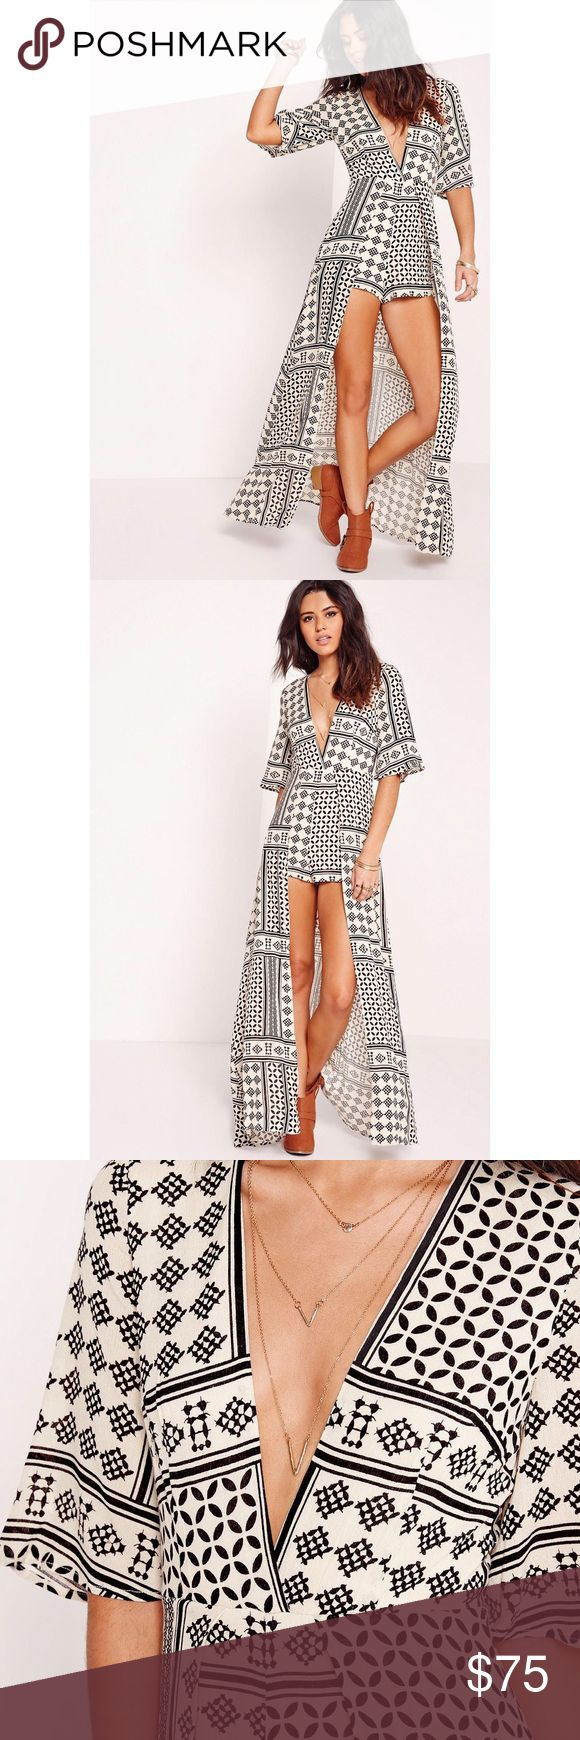 MISSGUIDED Aztec Maxi Playsuit Perfect for Coachella / summer time! Brand new with tags! Missguided Dresses